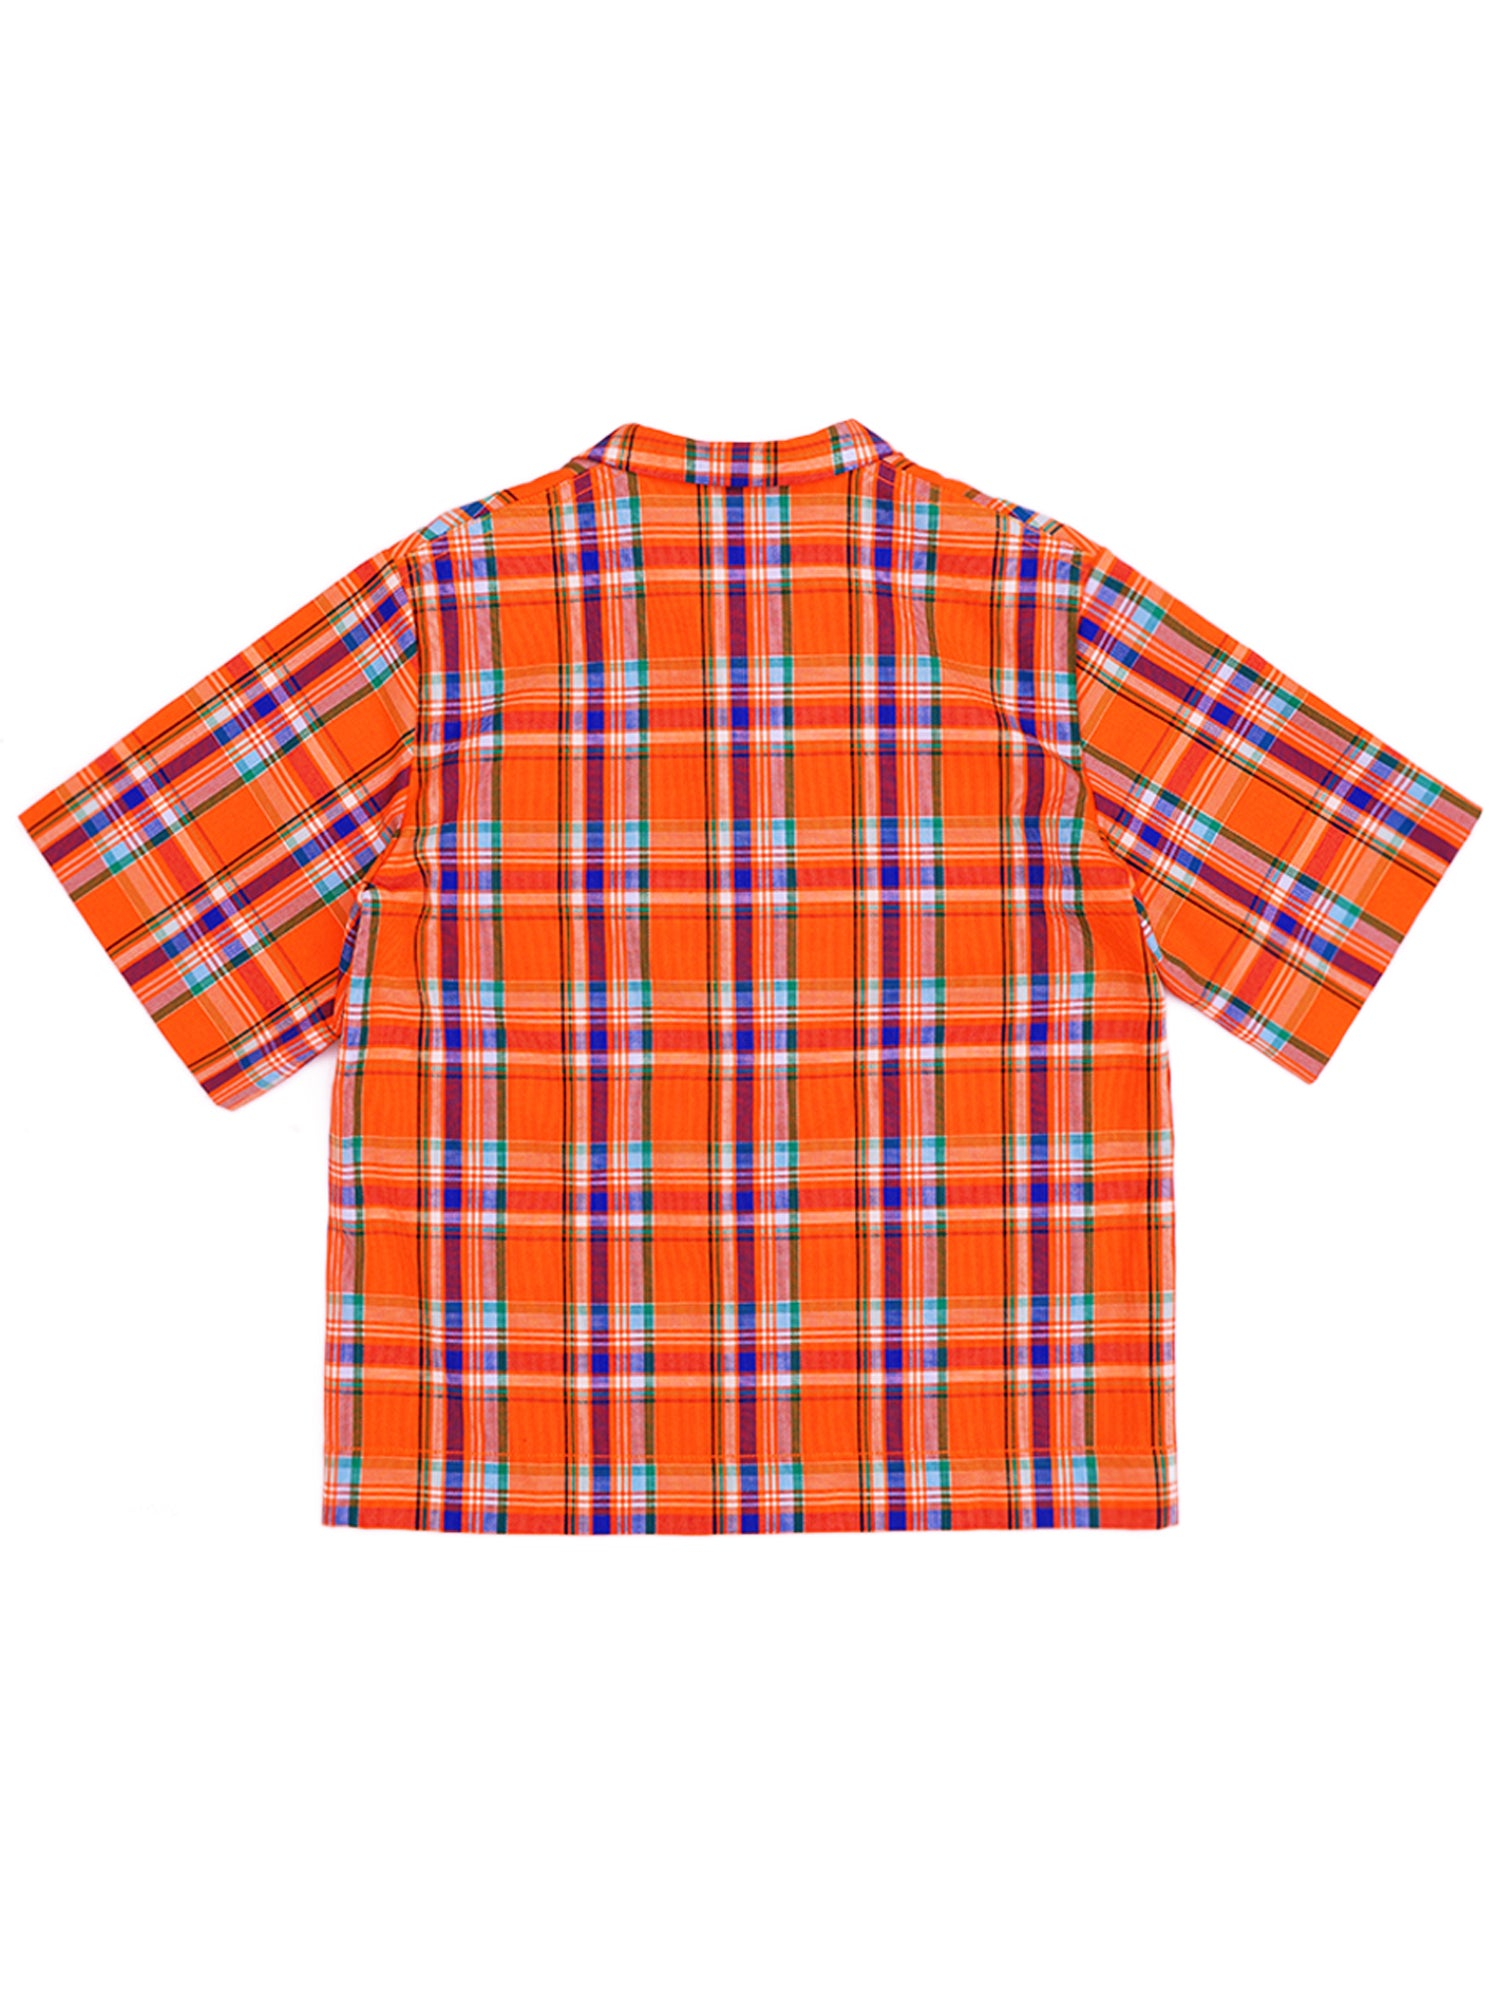 Lapel Plaid Short  Sleeve Shirt